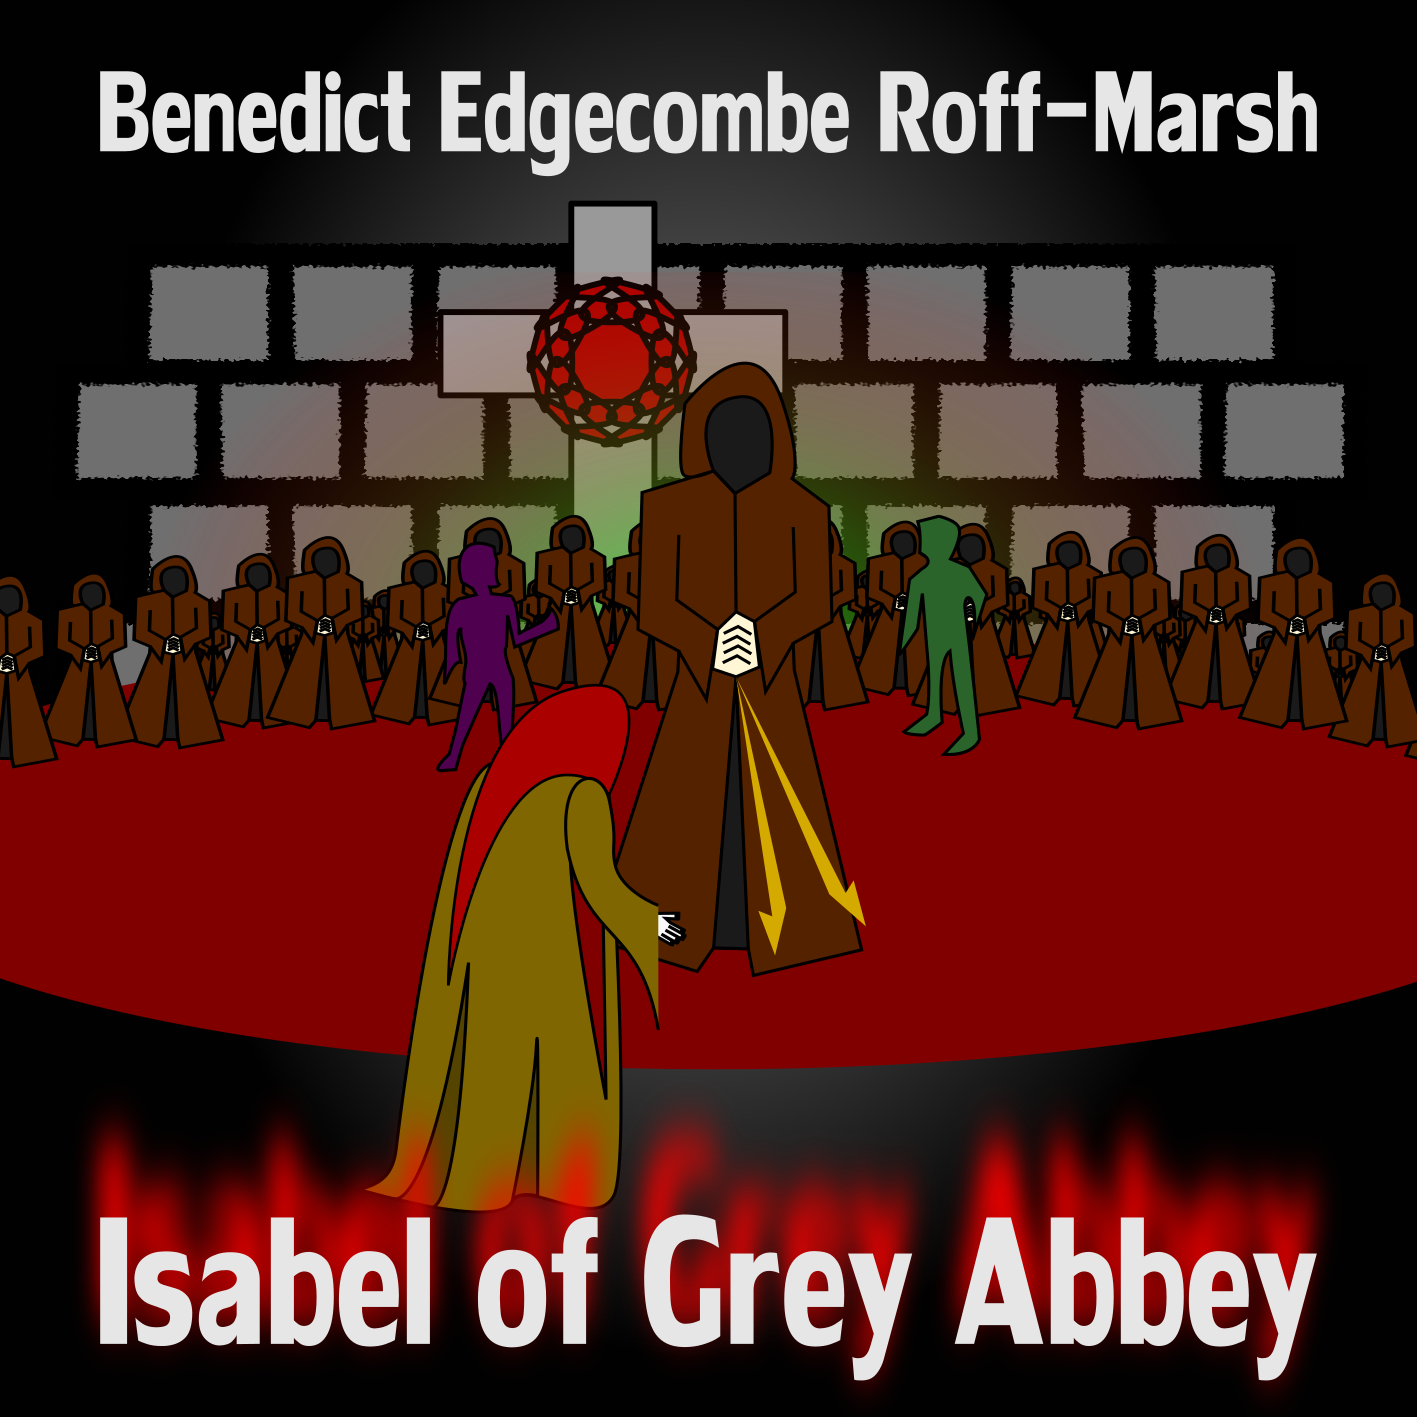 Isabel of Grey Abbey